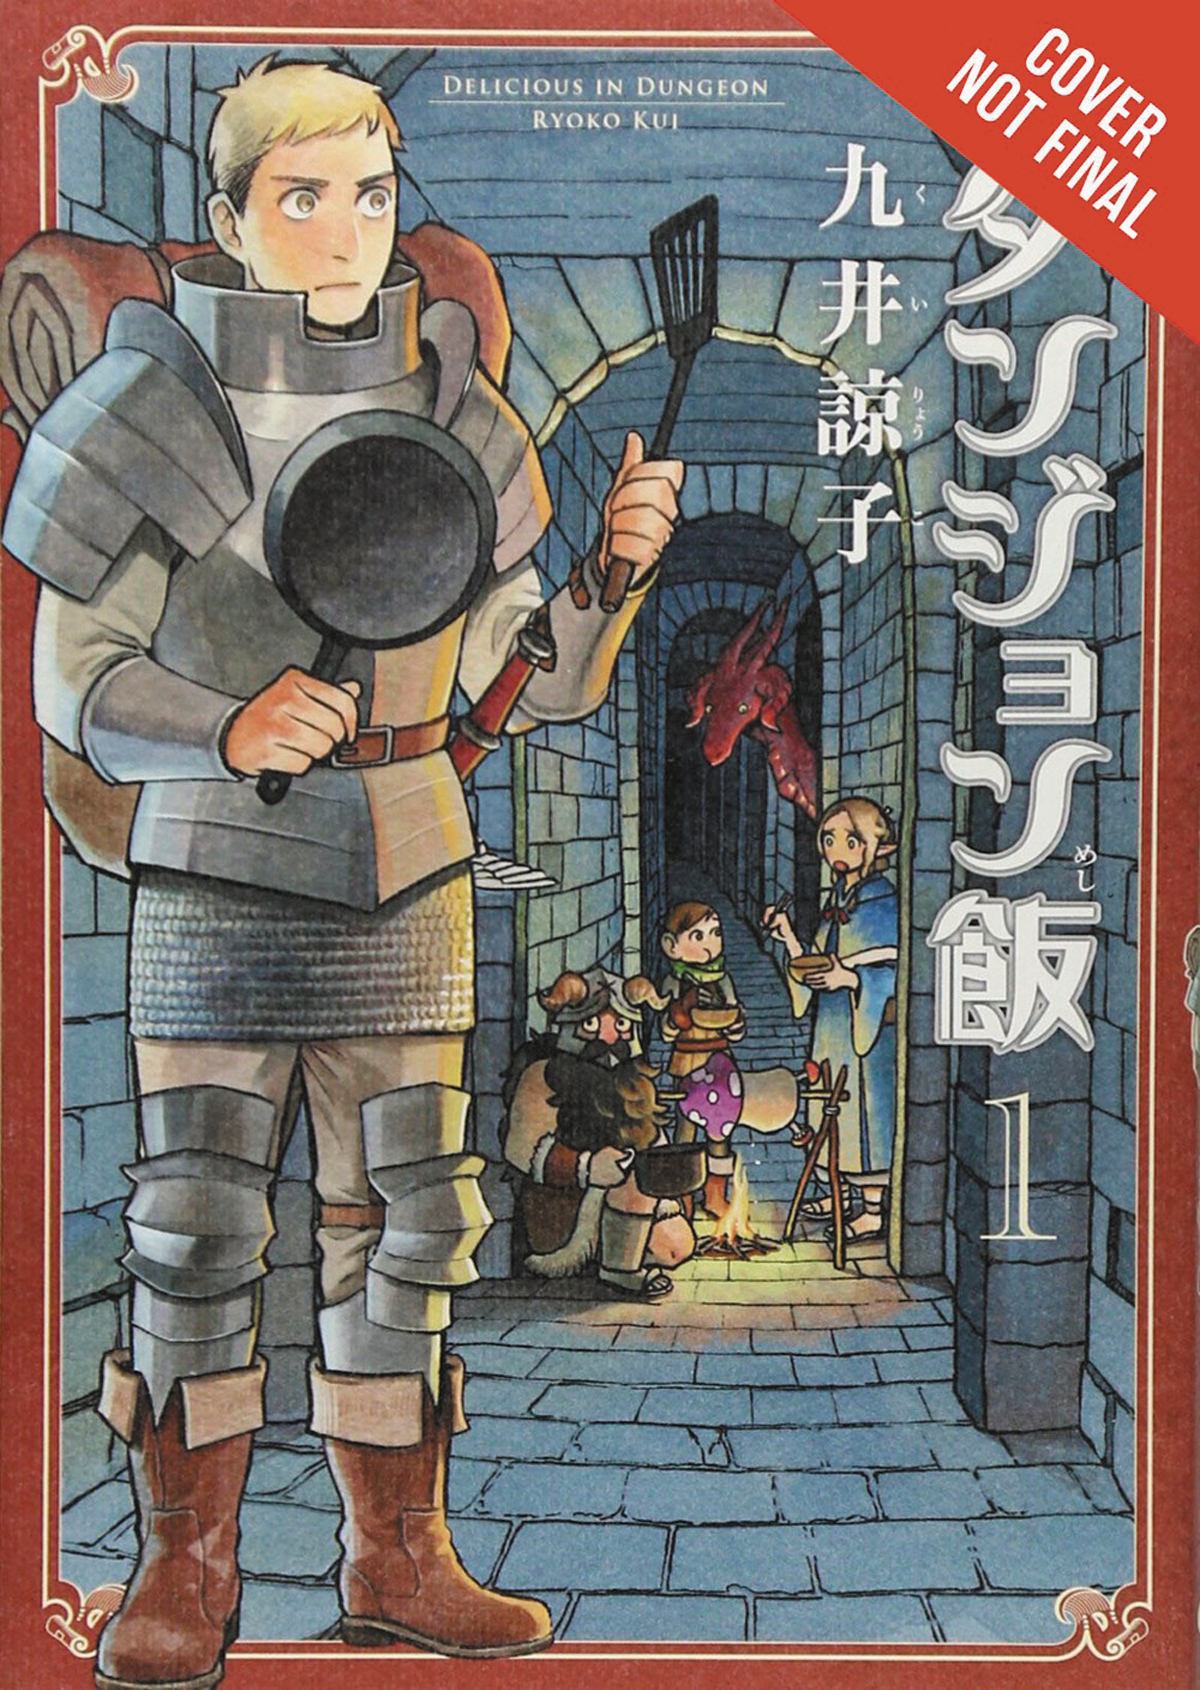 DELICIOUS IN DUNGEON GN VOL 01